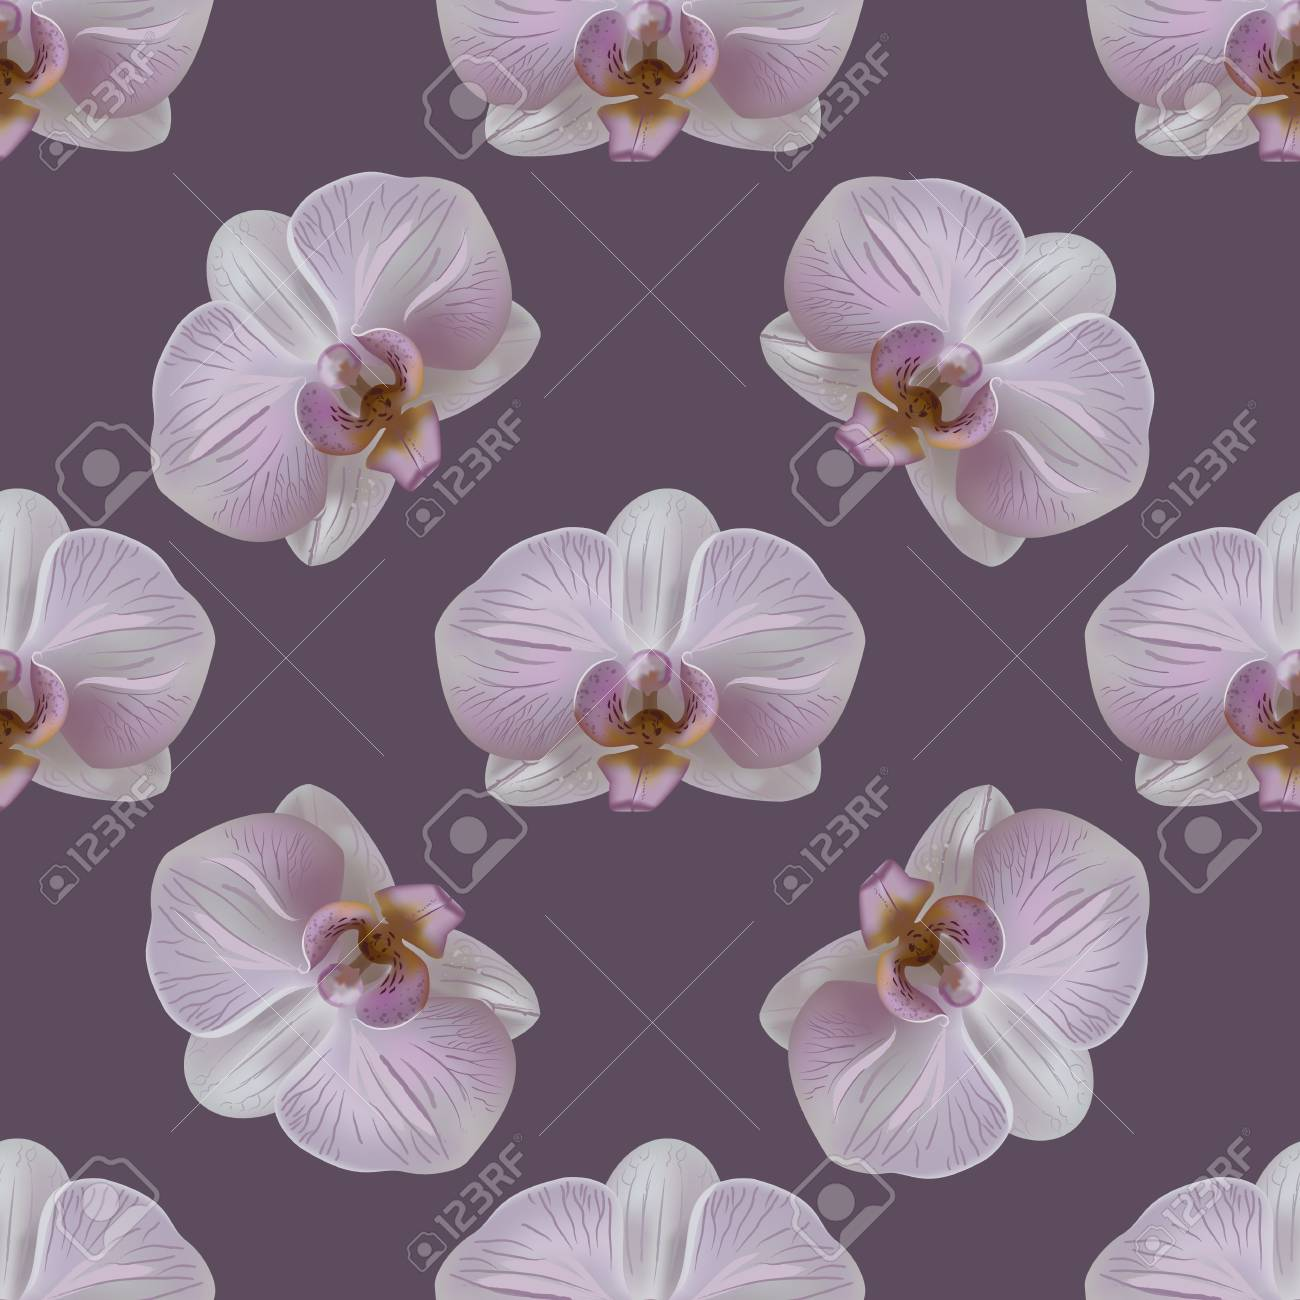 Tender Orchid Flower Seamless Pattern On Purp Background Stock 1300x1300